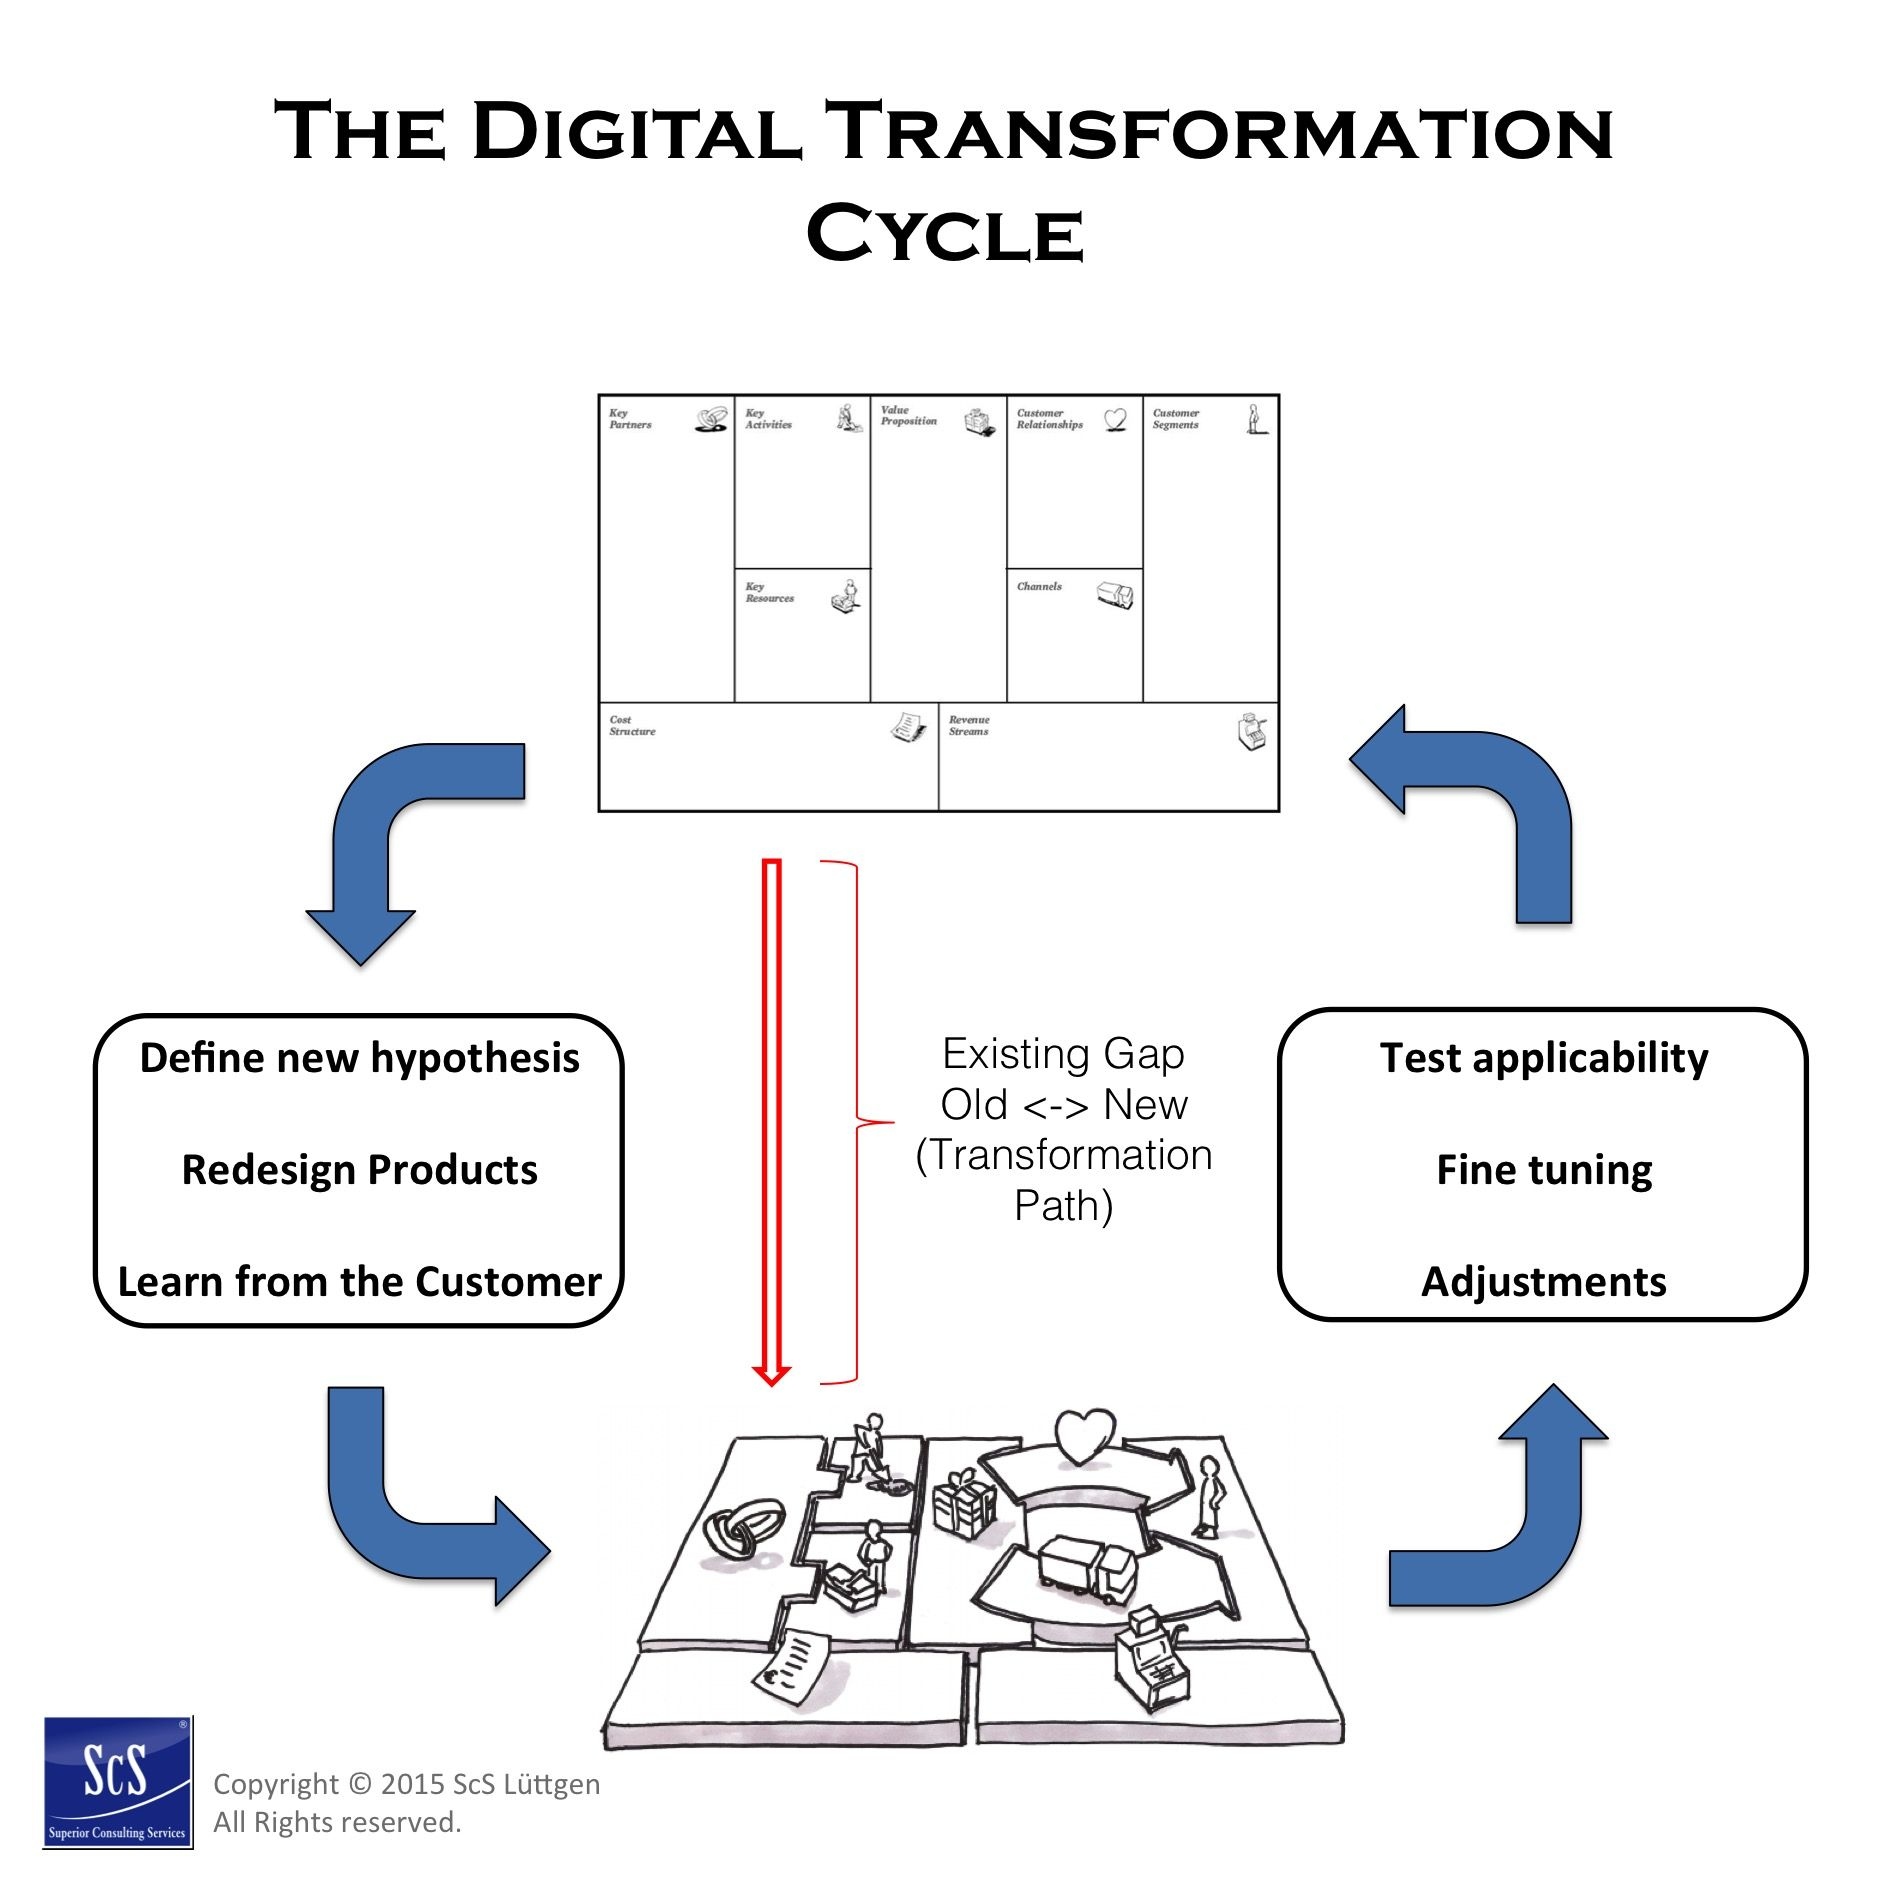 Achieving digital transformation is not a one way process